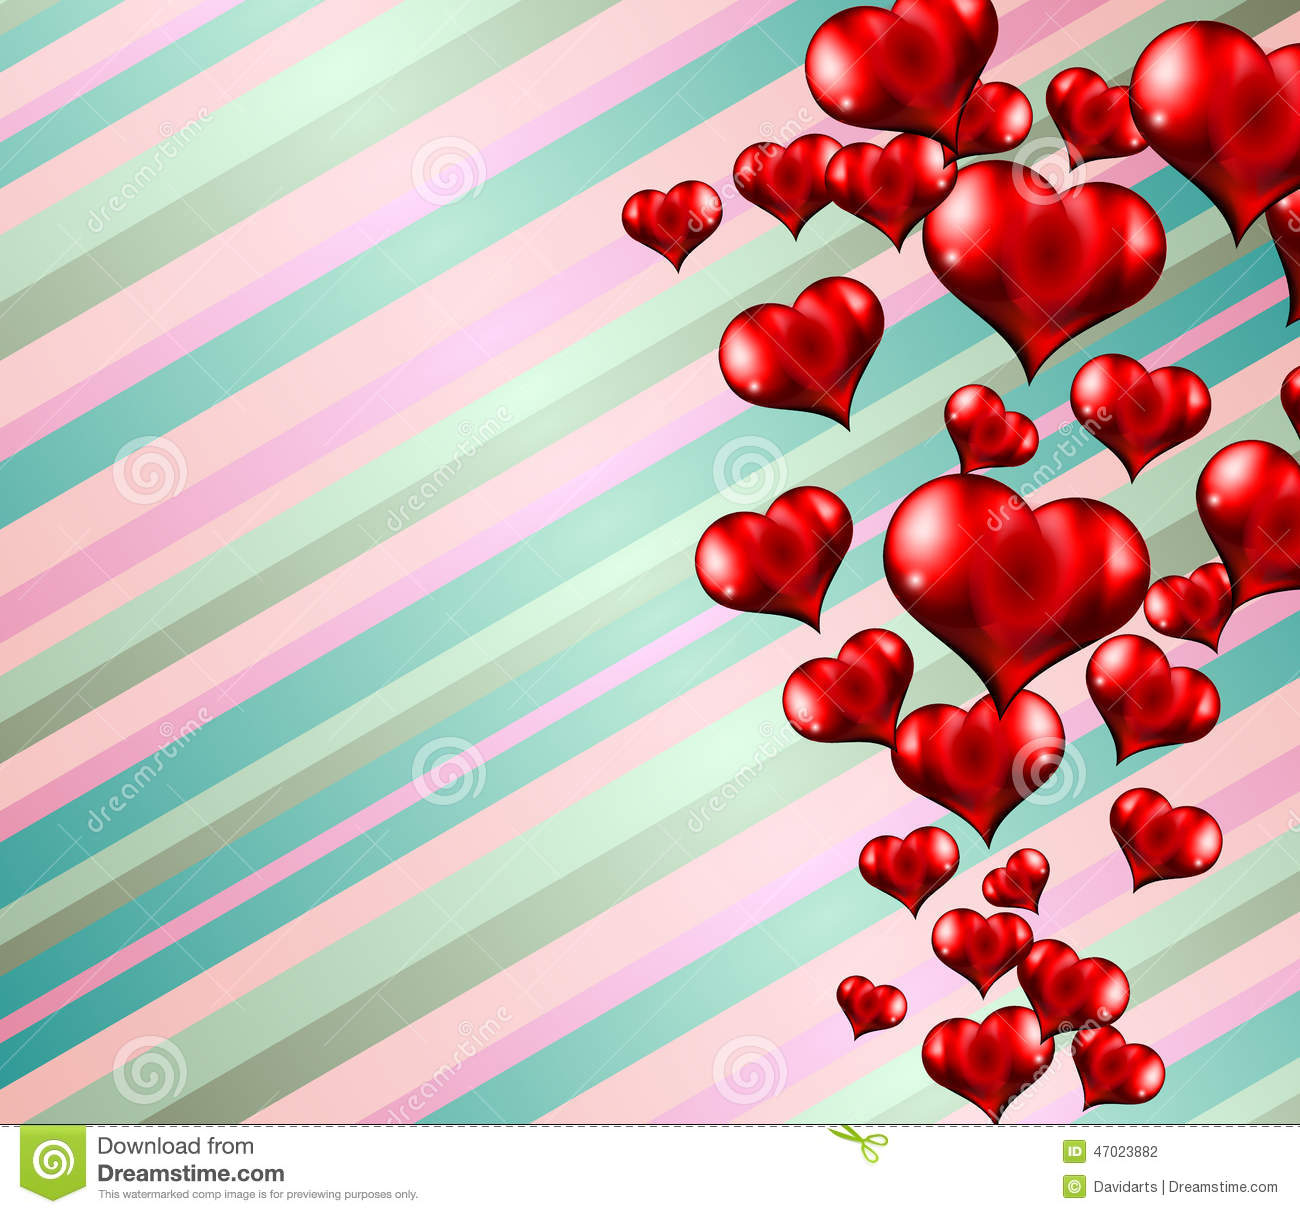 Lovely Striped Valentines Day Themed Background Stock